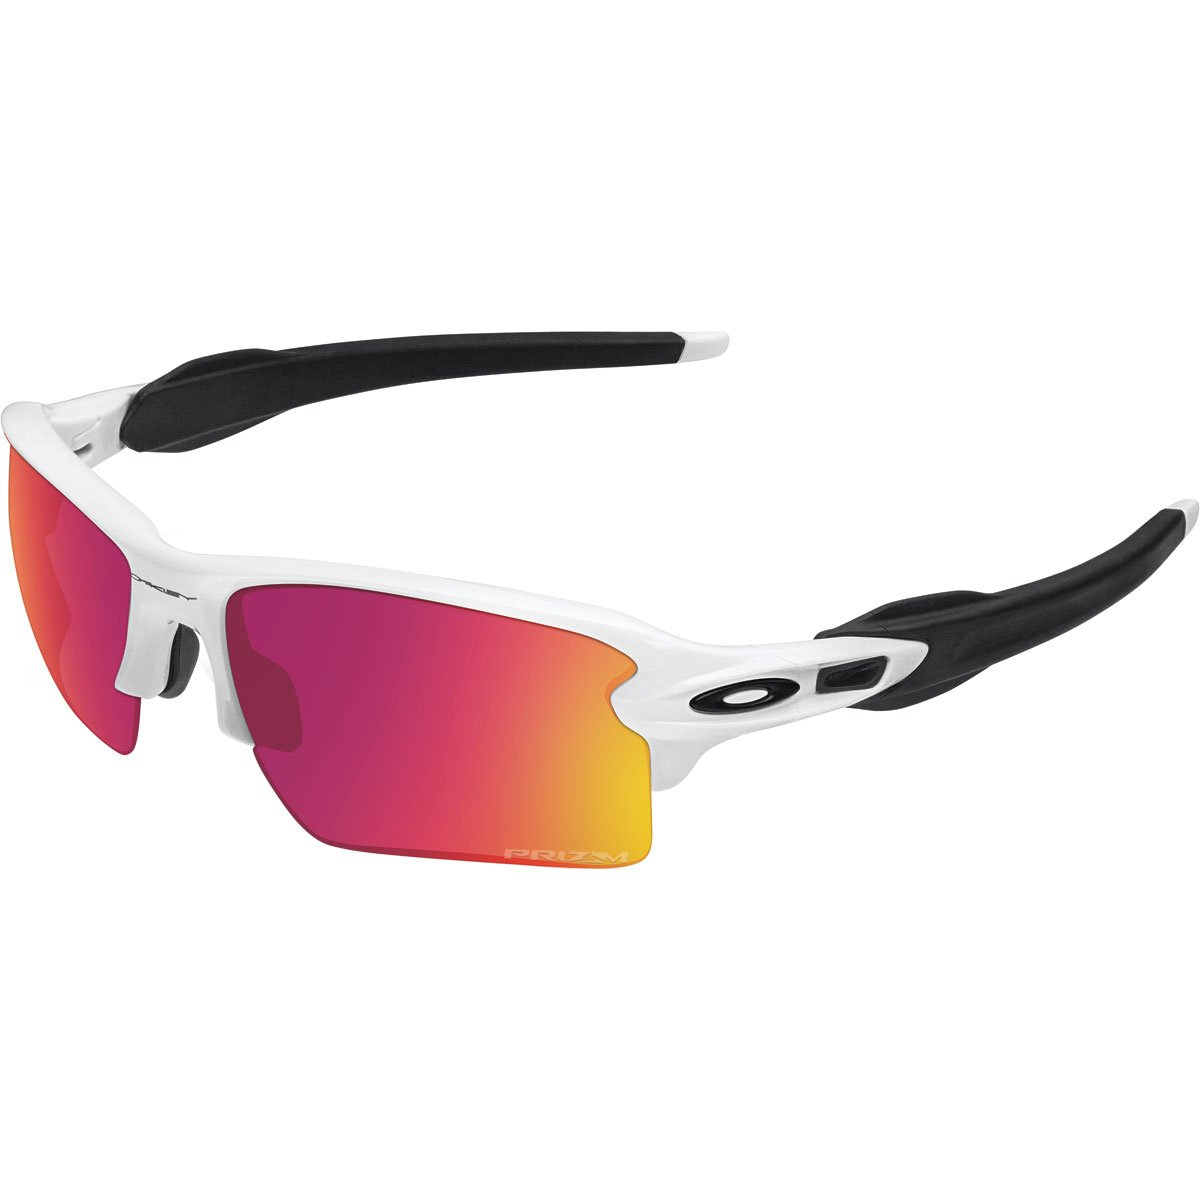 Oakley Men's OO9188 Flak 2.0 XL Rectangular Sunglasses, Polished White/Prizm Field, 59 mm by Oakley